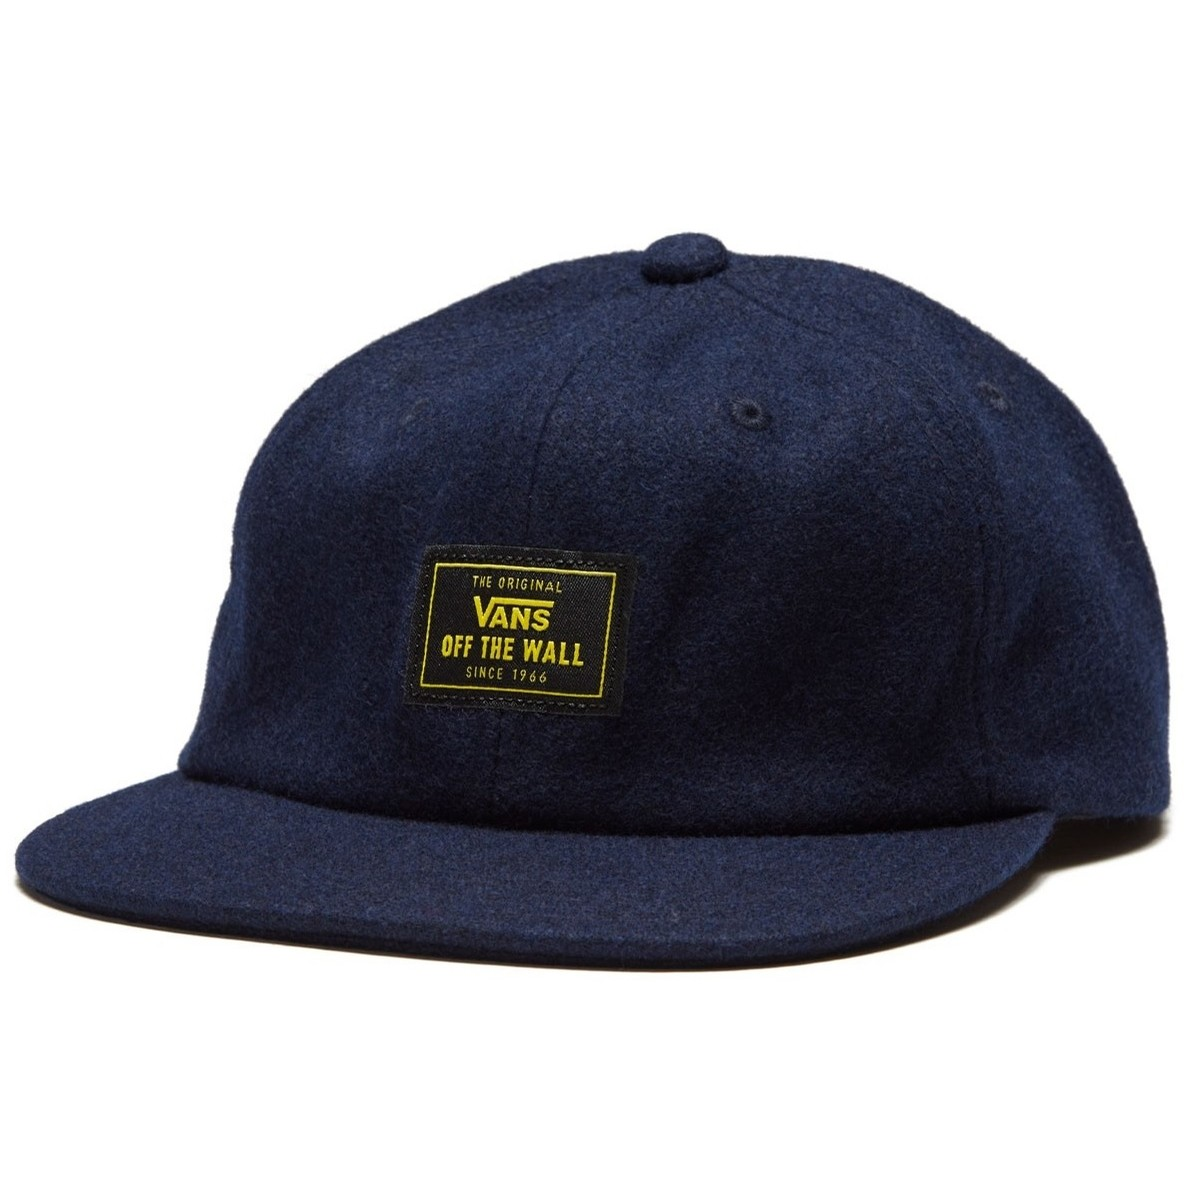 Buckner Vintage Unstructured Hat (Dress Blues)